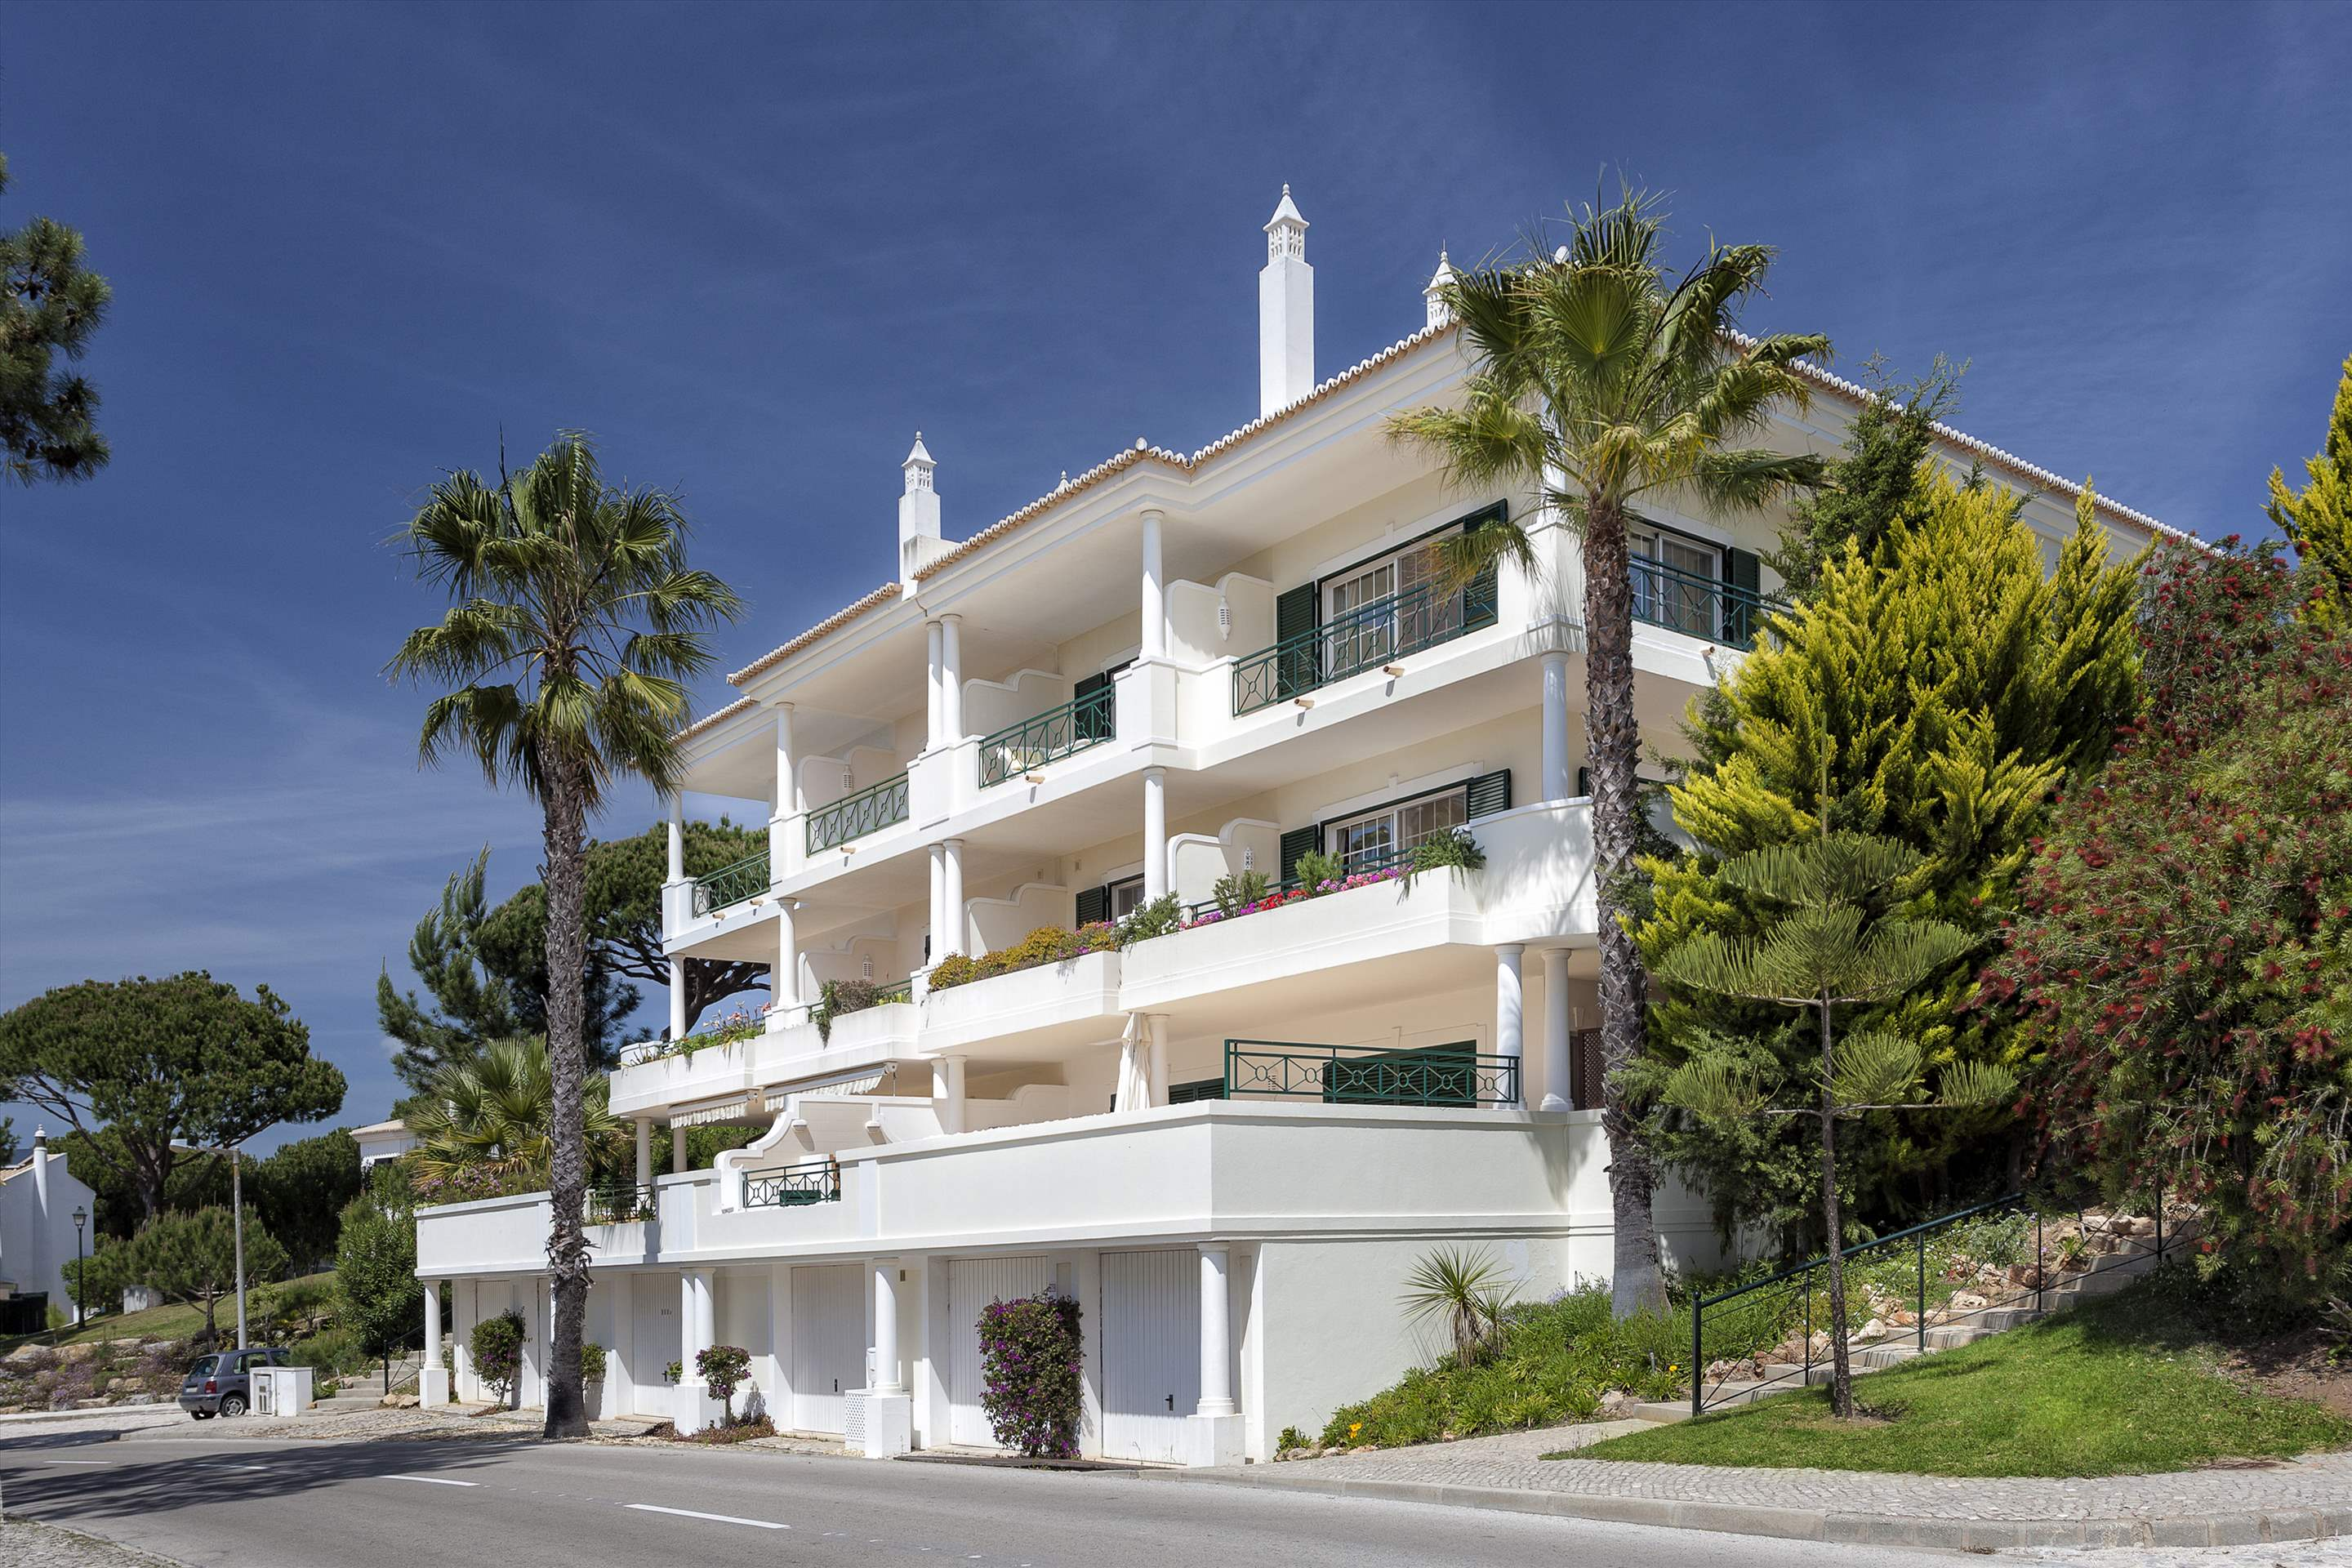 Apartment Romaine, 3 bedroom apartment in Vale do Lobo, Algarve Photo #8